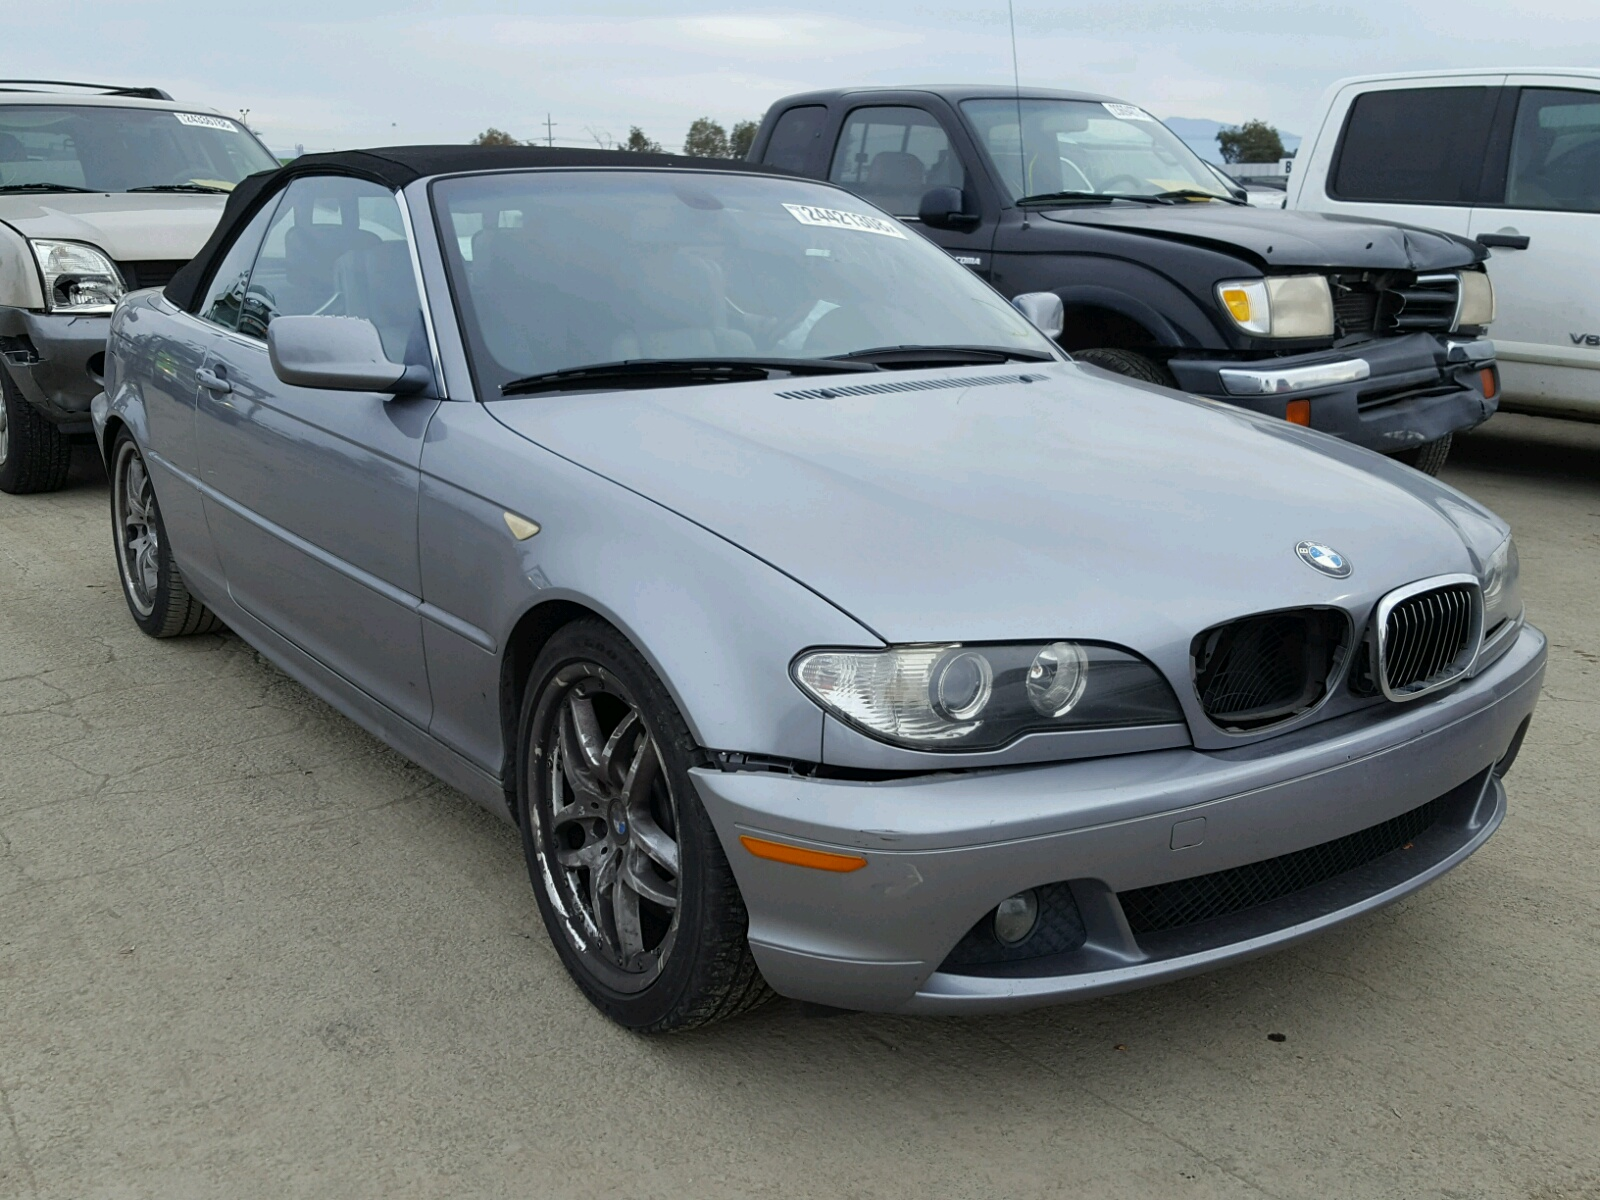 Auto Auction Ended On VIN WBSCDVEE BMW M AUTOMAT - 1997 bmw m3 convertible